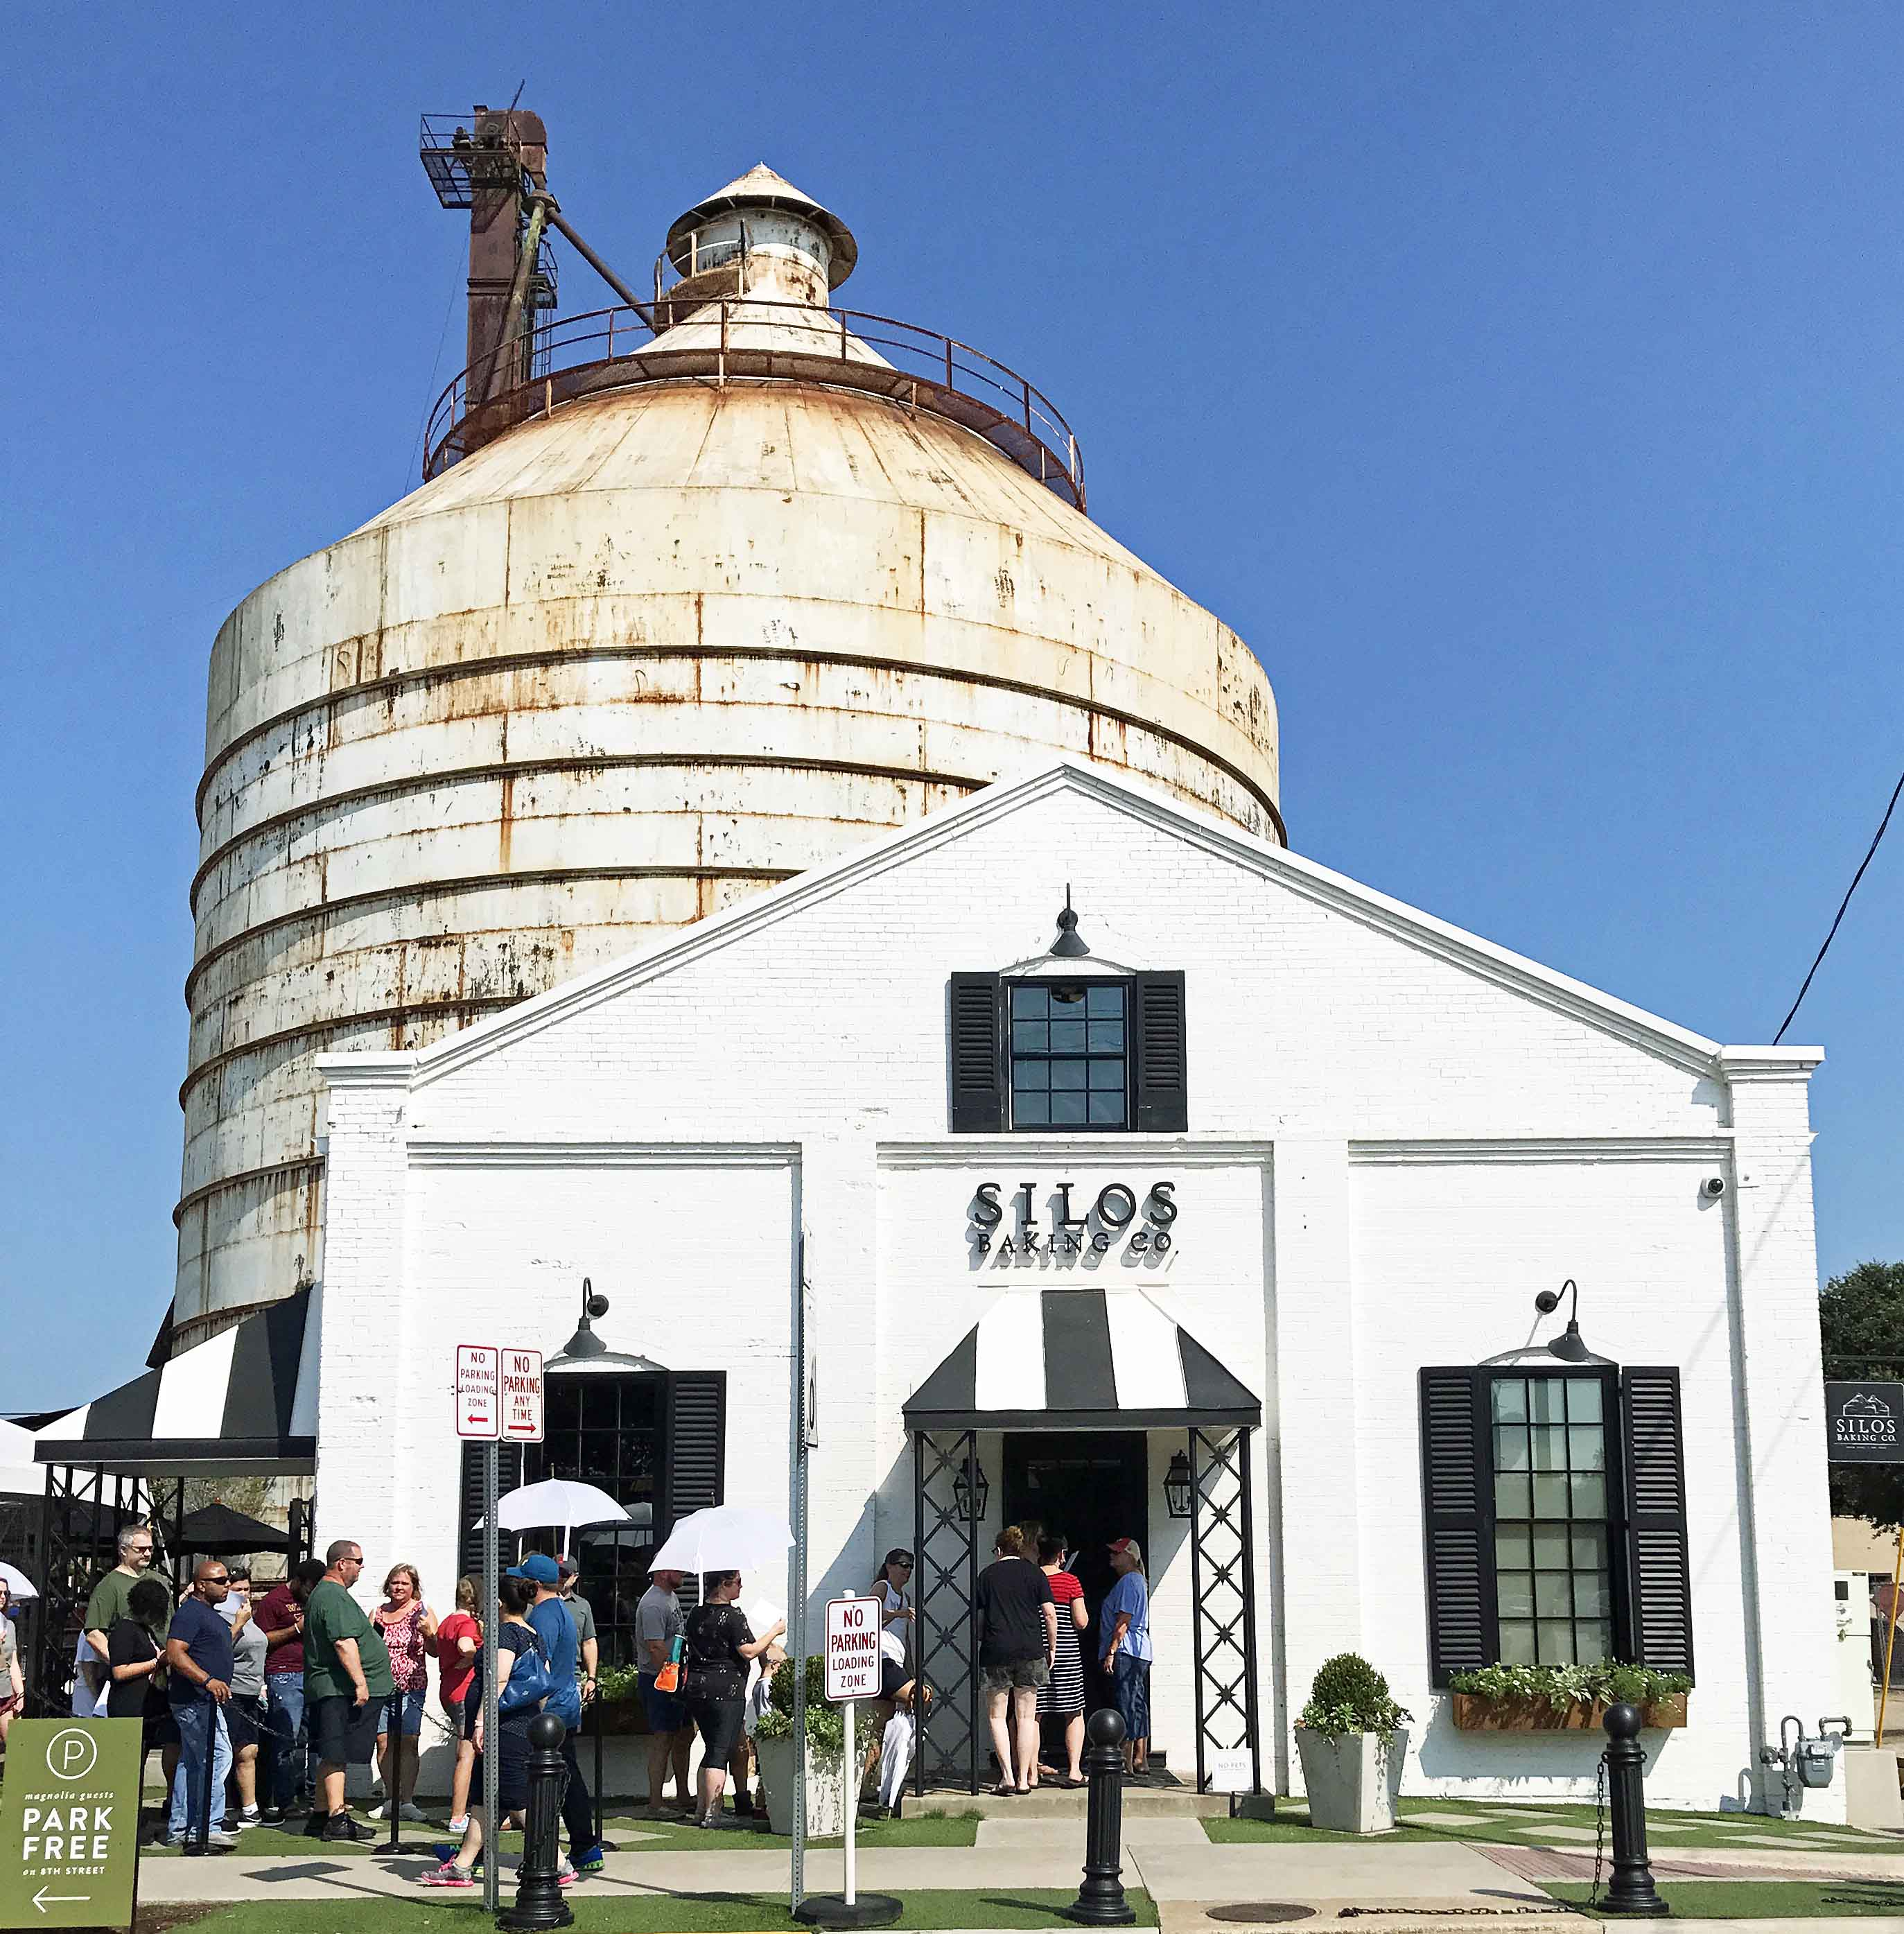 Silos Baking Company at Magnolia Market at the Silos. How to plan the perfect trip to Magnolia Market at the Silos in Waco Texas. Magnolia Market was created by HGTV's Fixer Upper favorite couple, Chip and Joanna Gaines. Visit Magnolia Market, Silo Baking Co. and the beautiful grounds. Tips for planning a trip to Magnolia Market. www.modernhoney.com